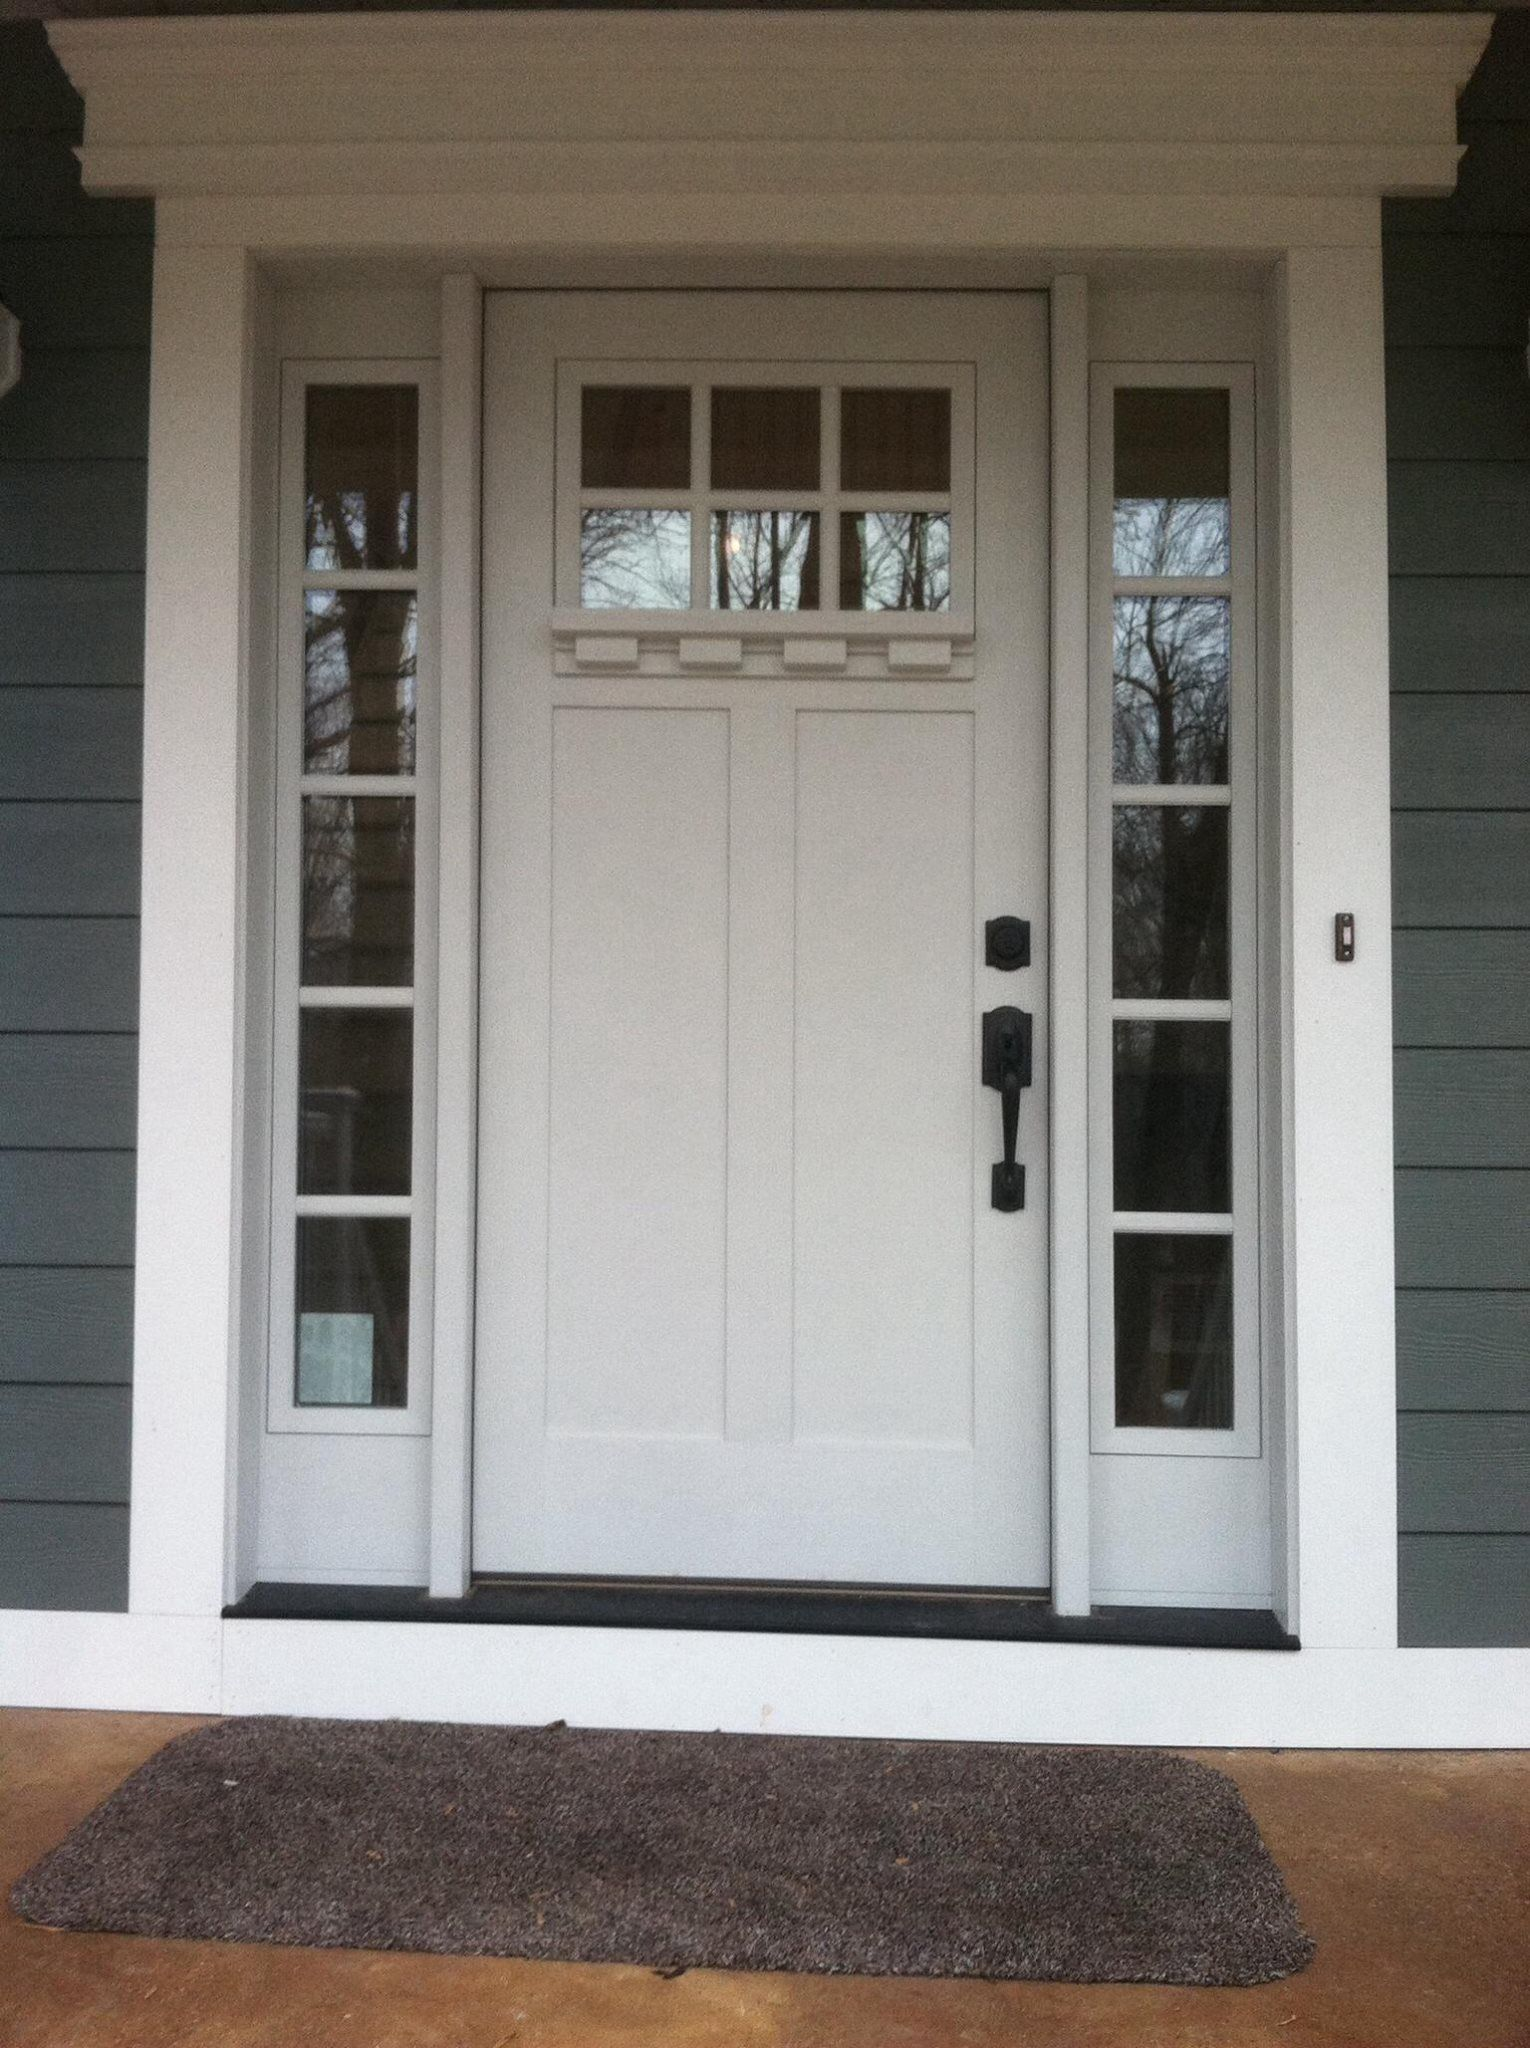 Crisp and clean just in time for spring clopay craftsman collection fiberglass front door factory